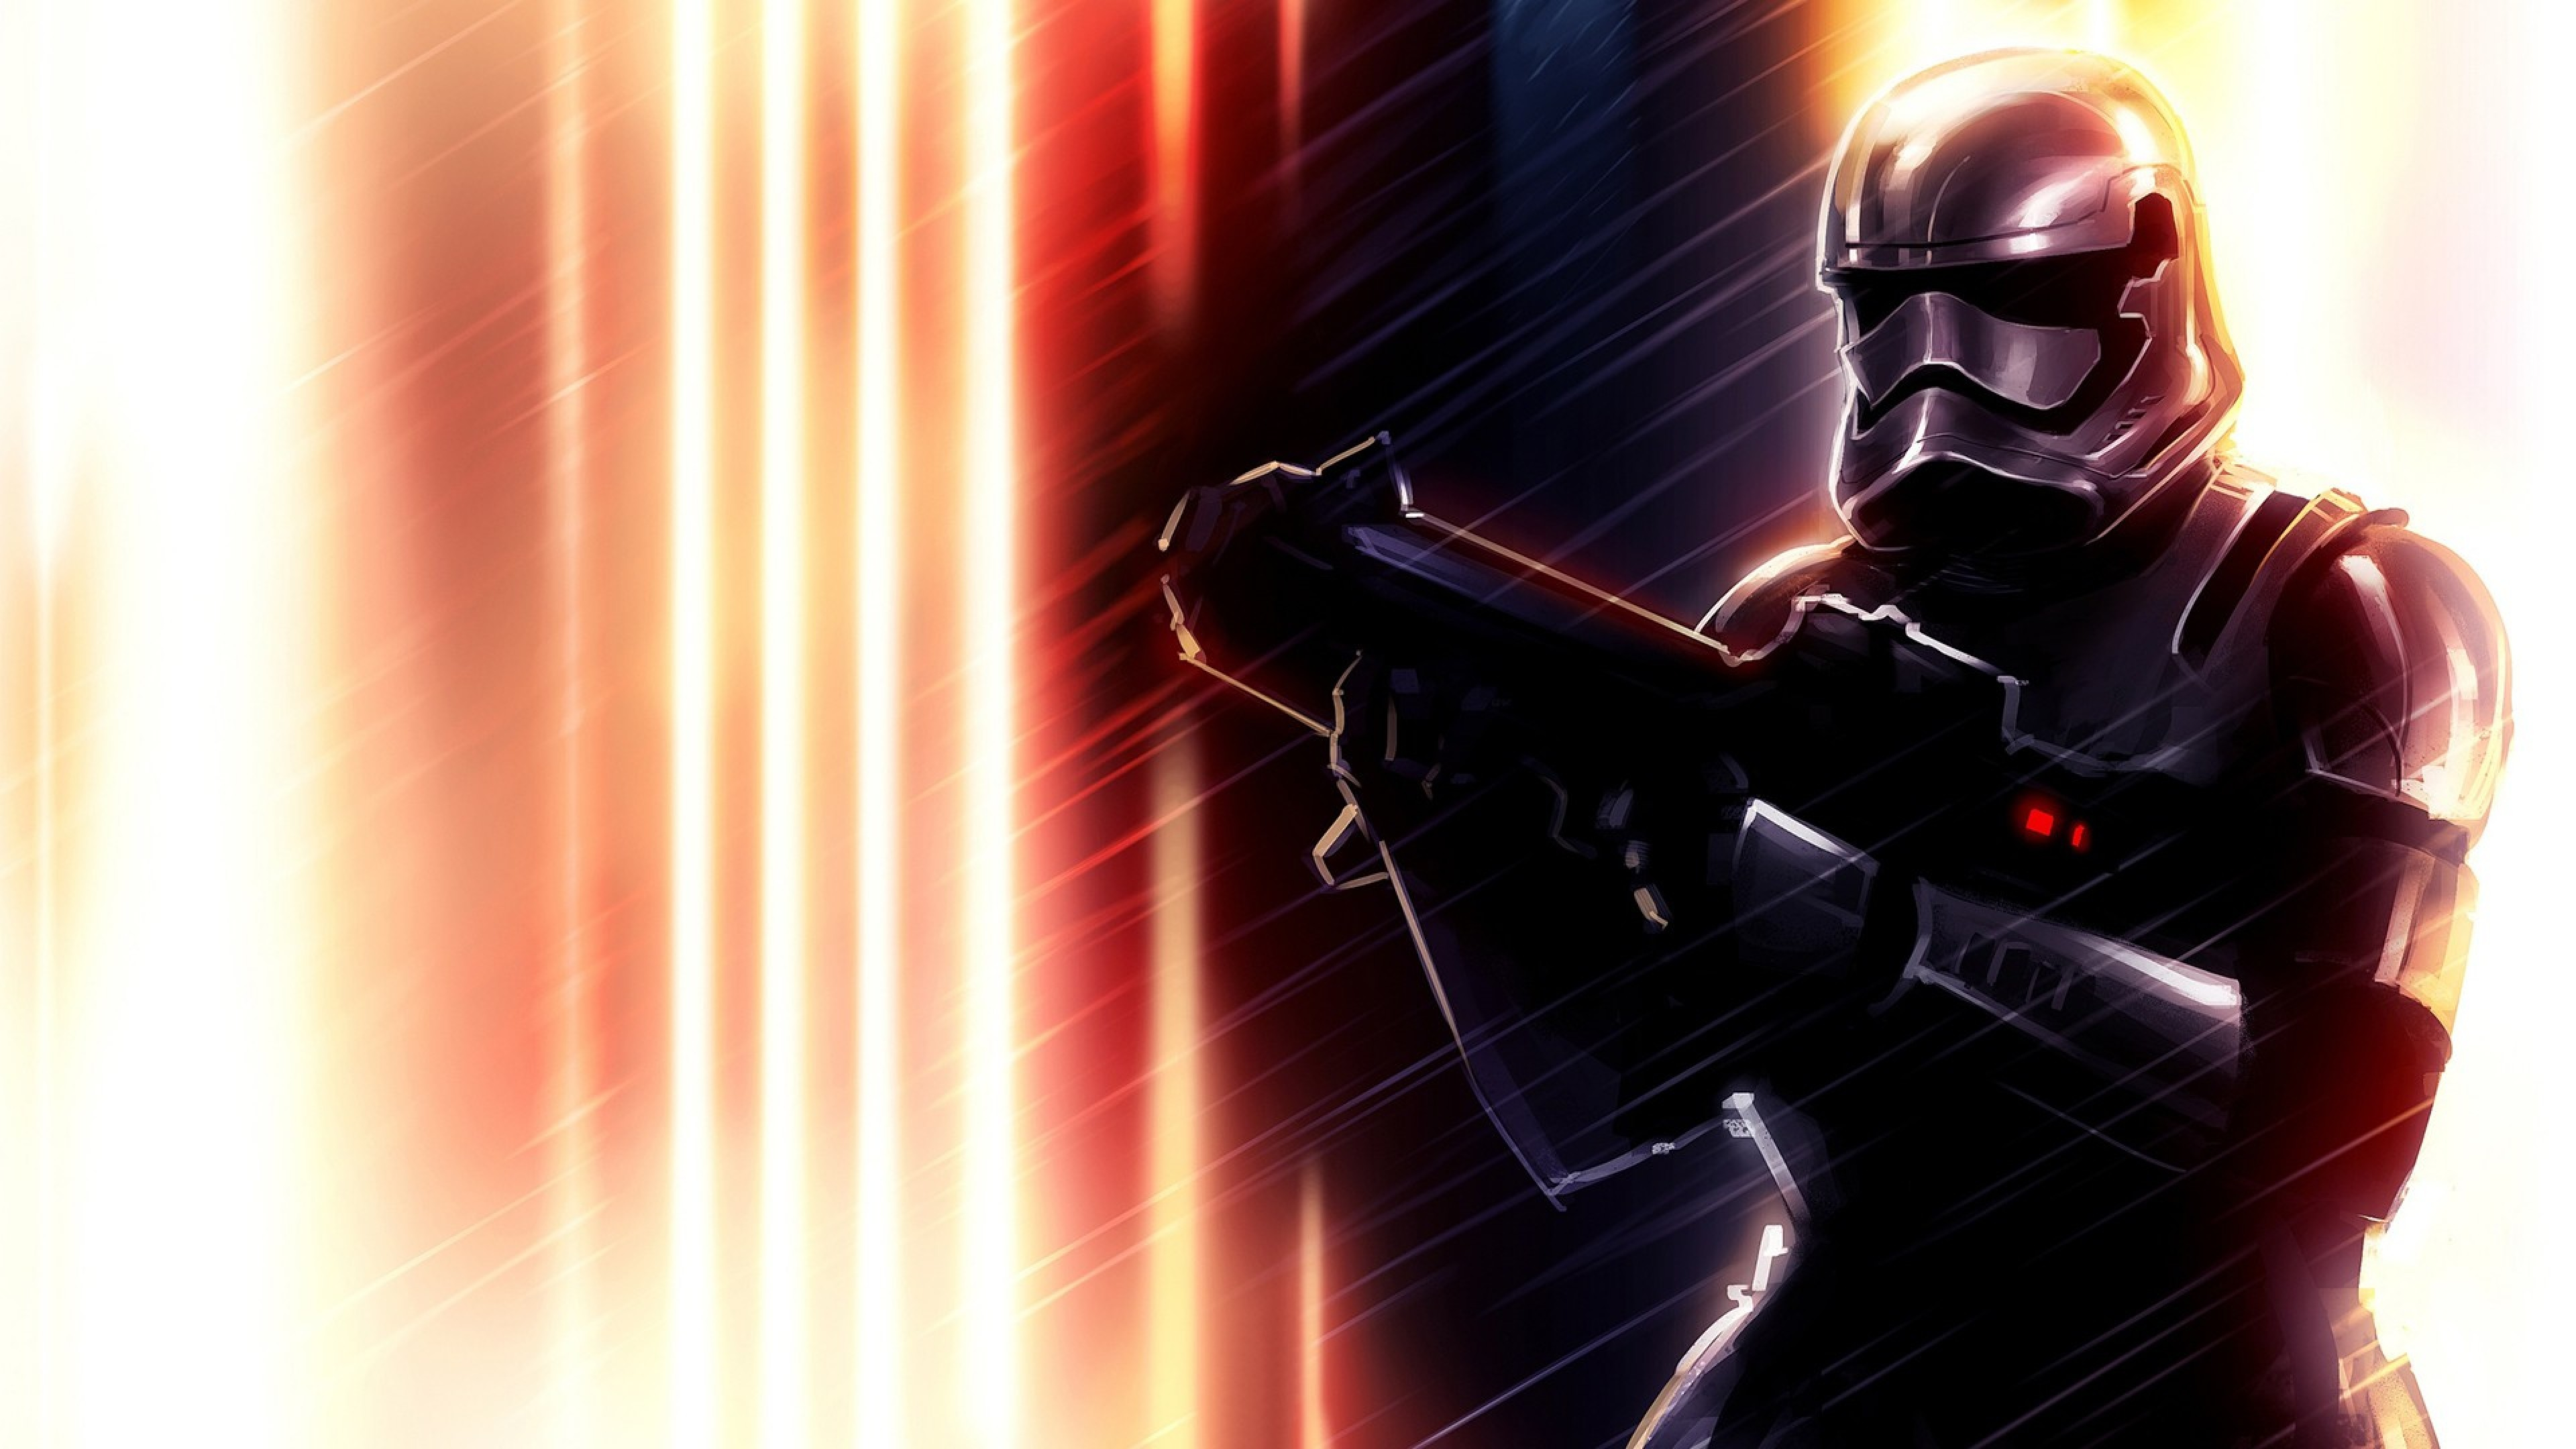 3840x2160 Preview wallpaper star wars, darth vader, art